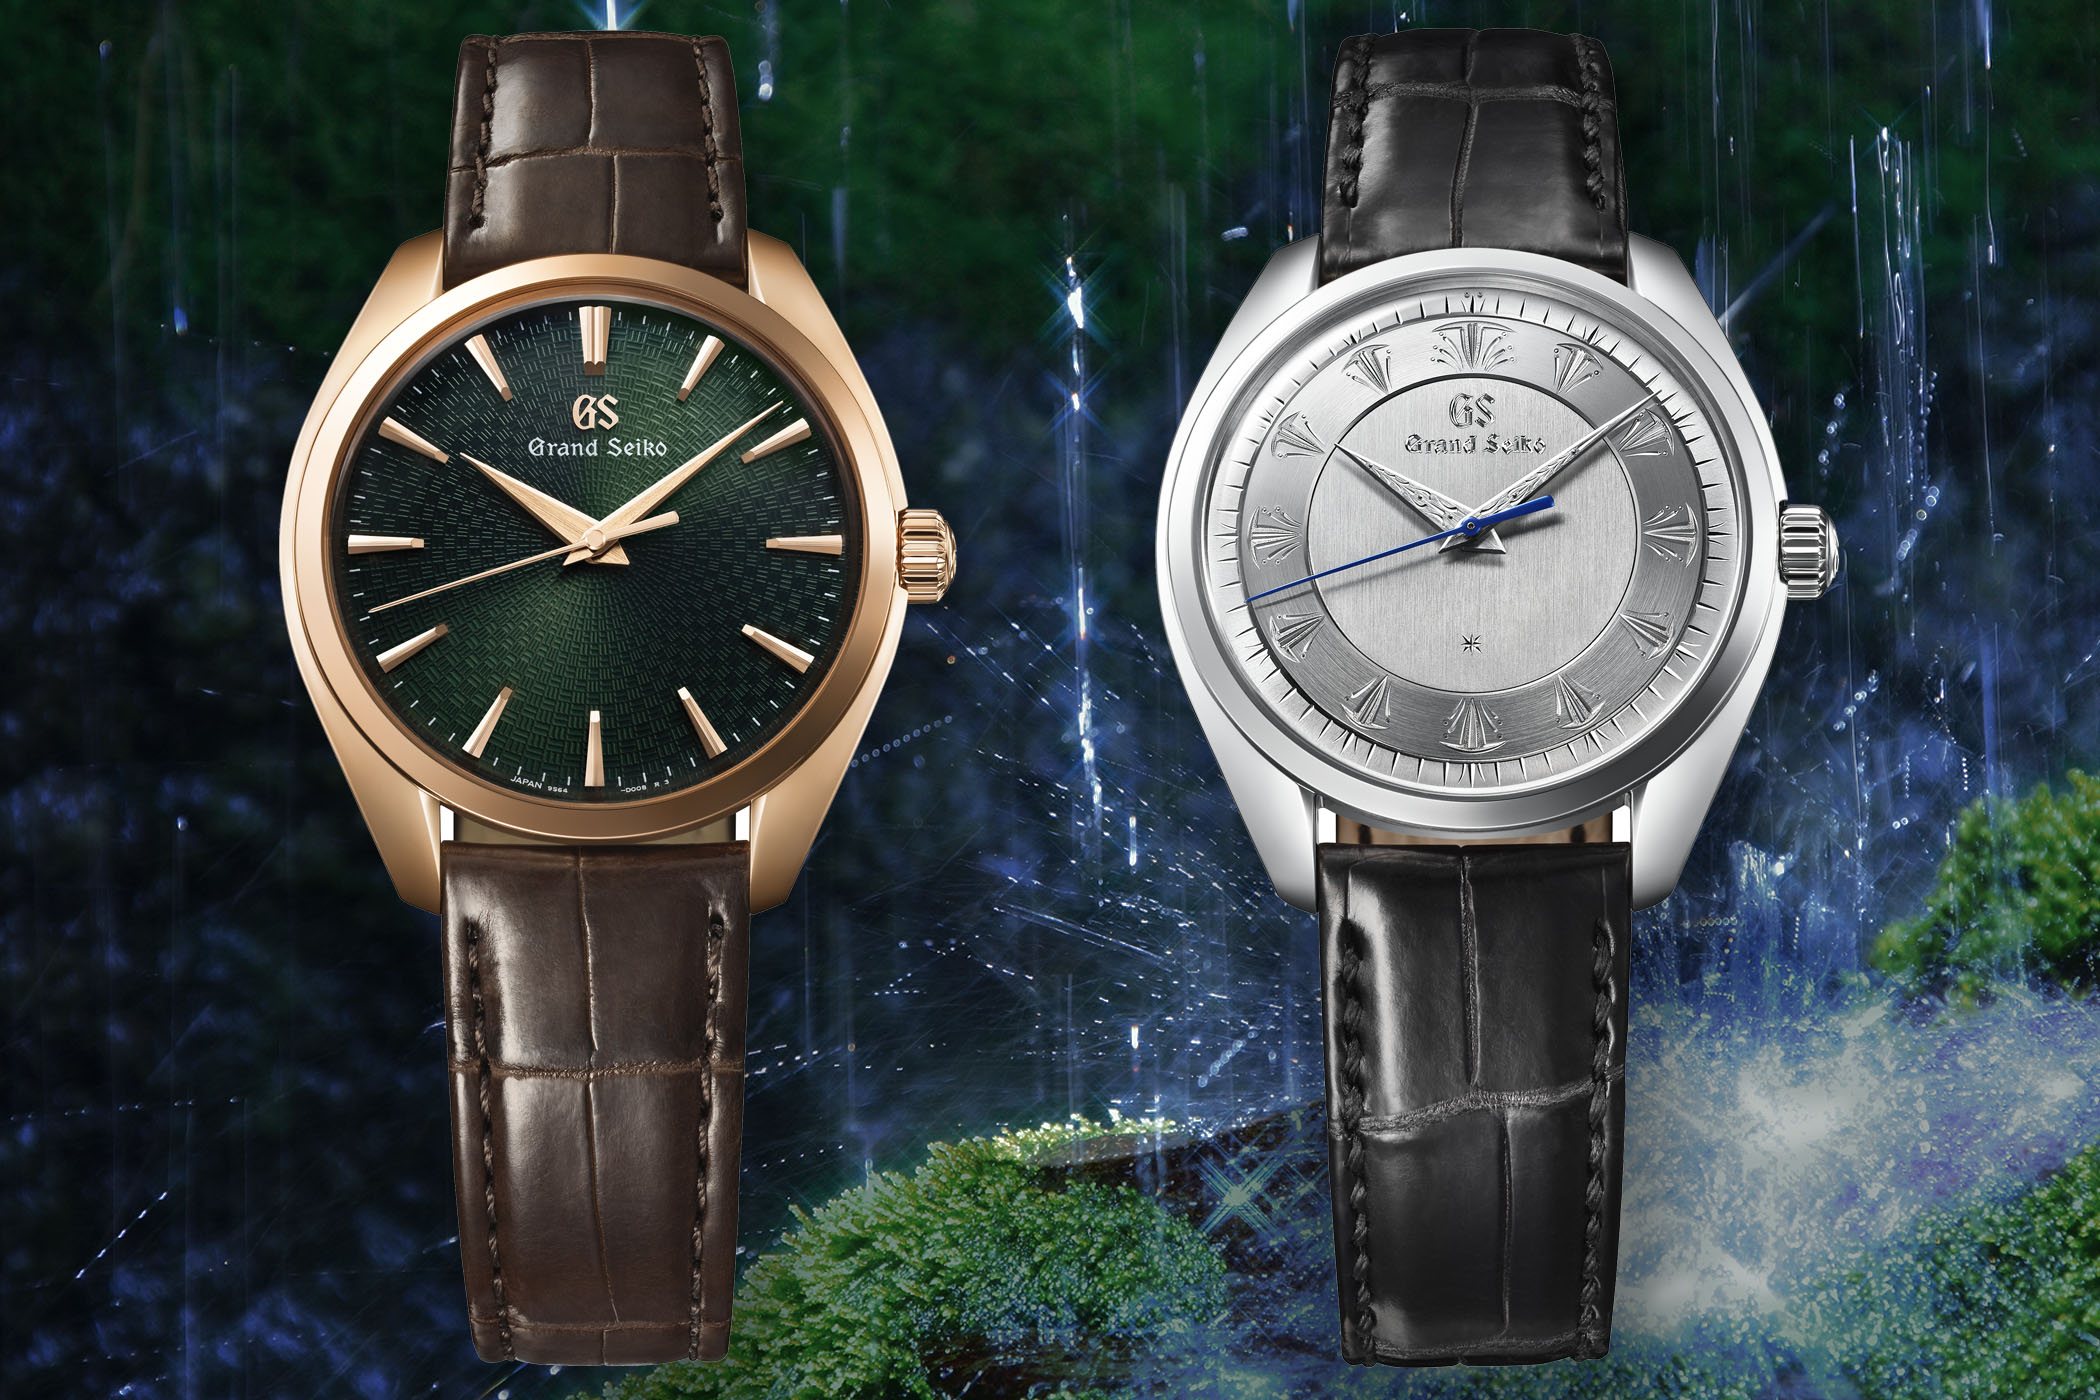 Grand Seiko 60th Anniversary Limited Edition Shizukuishi SBGW263 and SBGW264